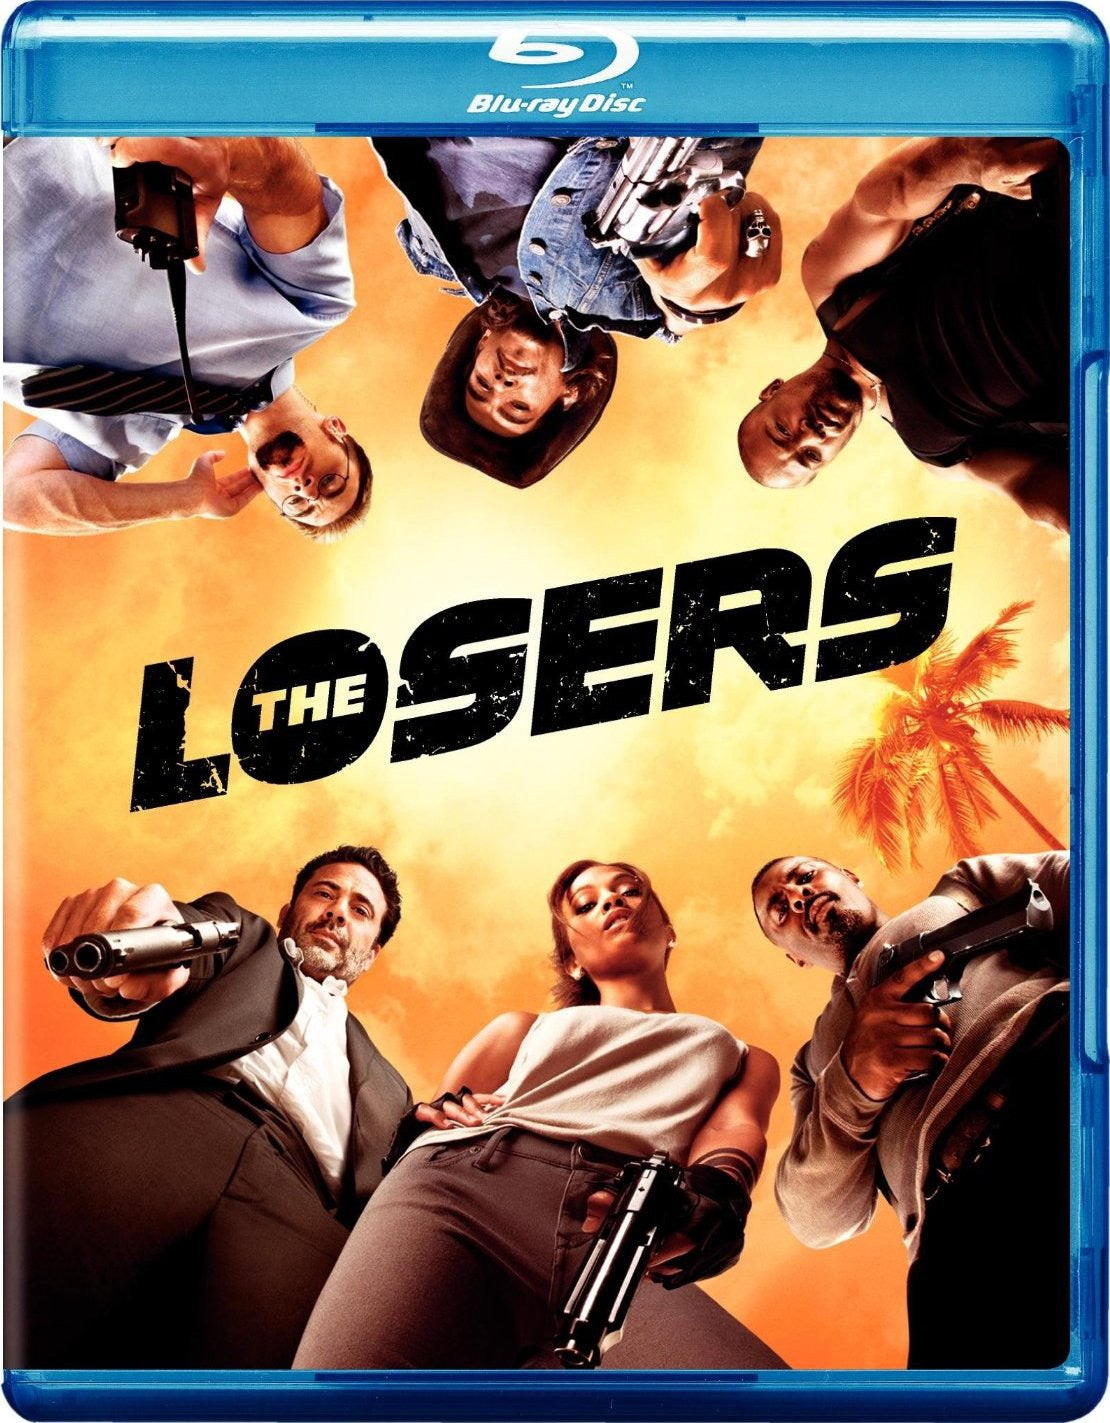 The Losers (Blu-ray/DVD)